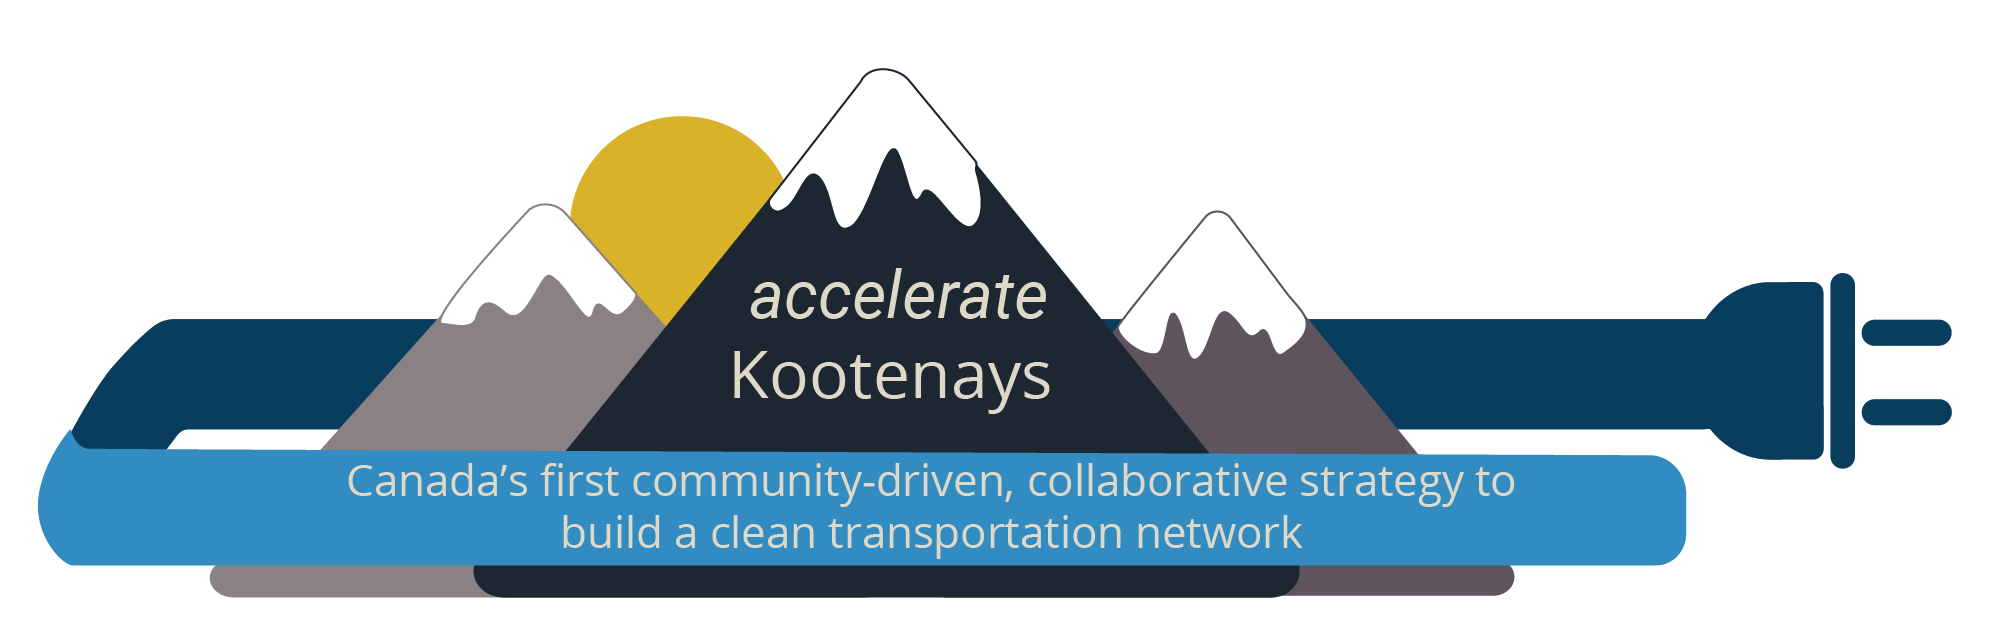 mountain graphic of accelerate Kootenays